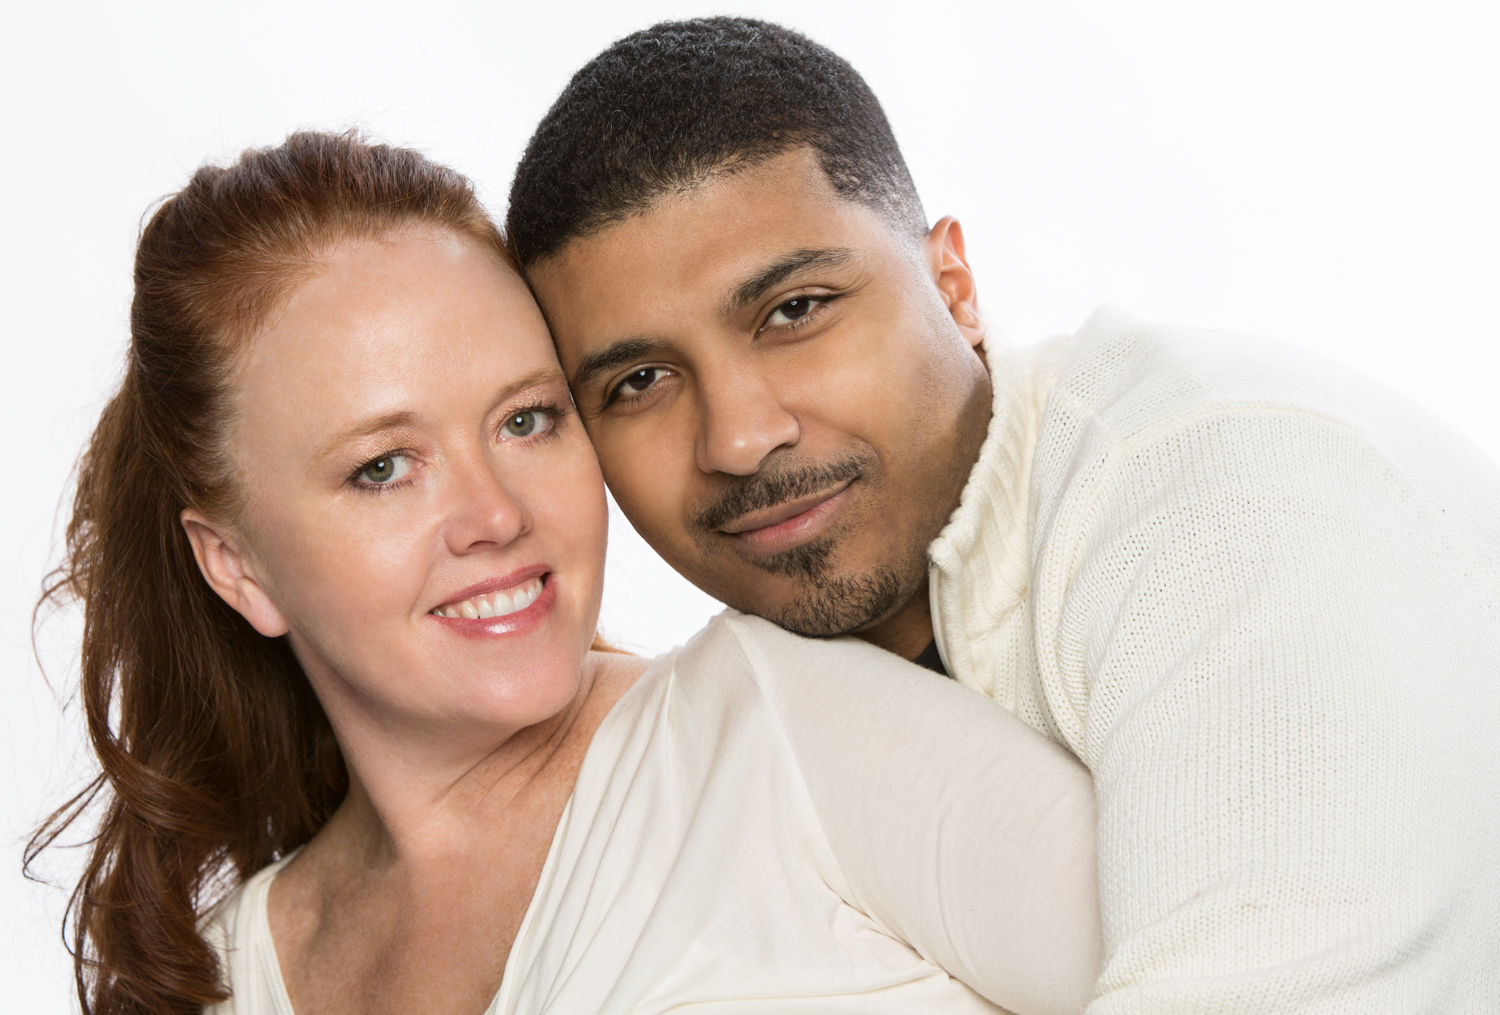 Couple Portrait on White Background by Lamonte G Photography Orlando